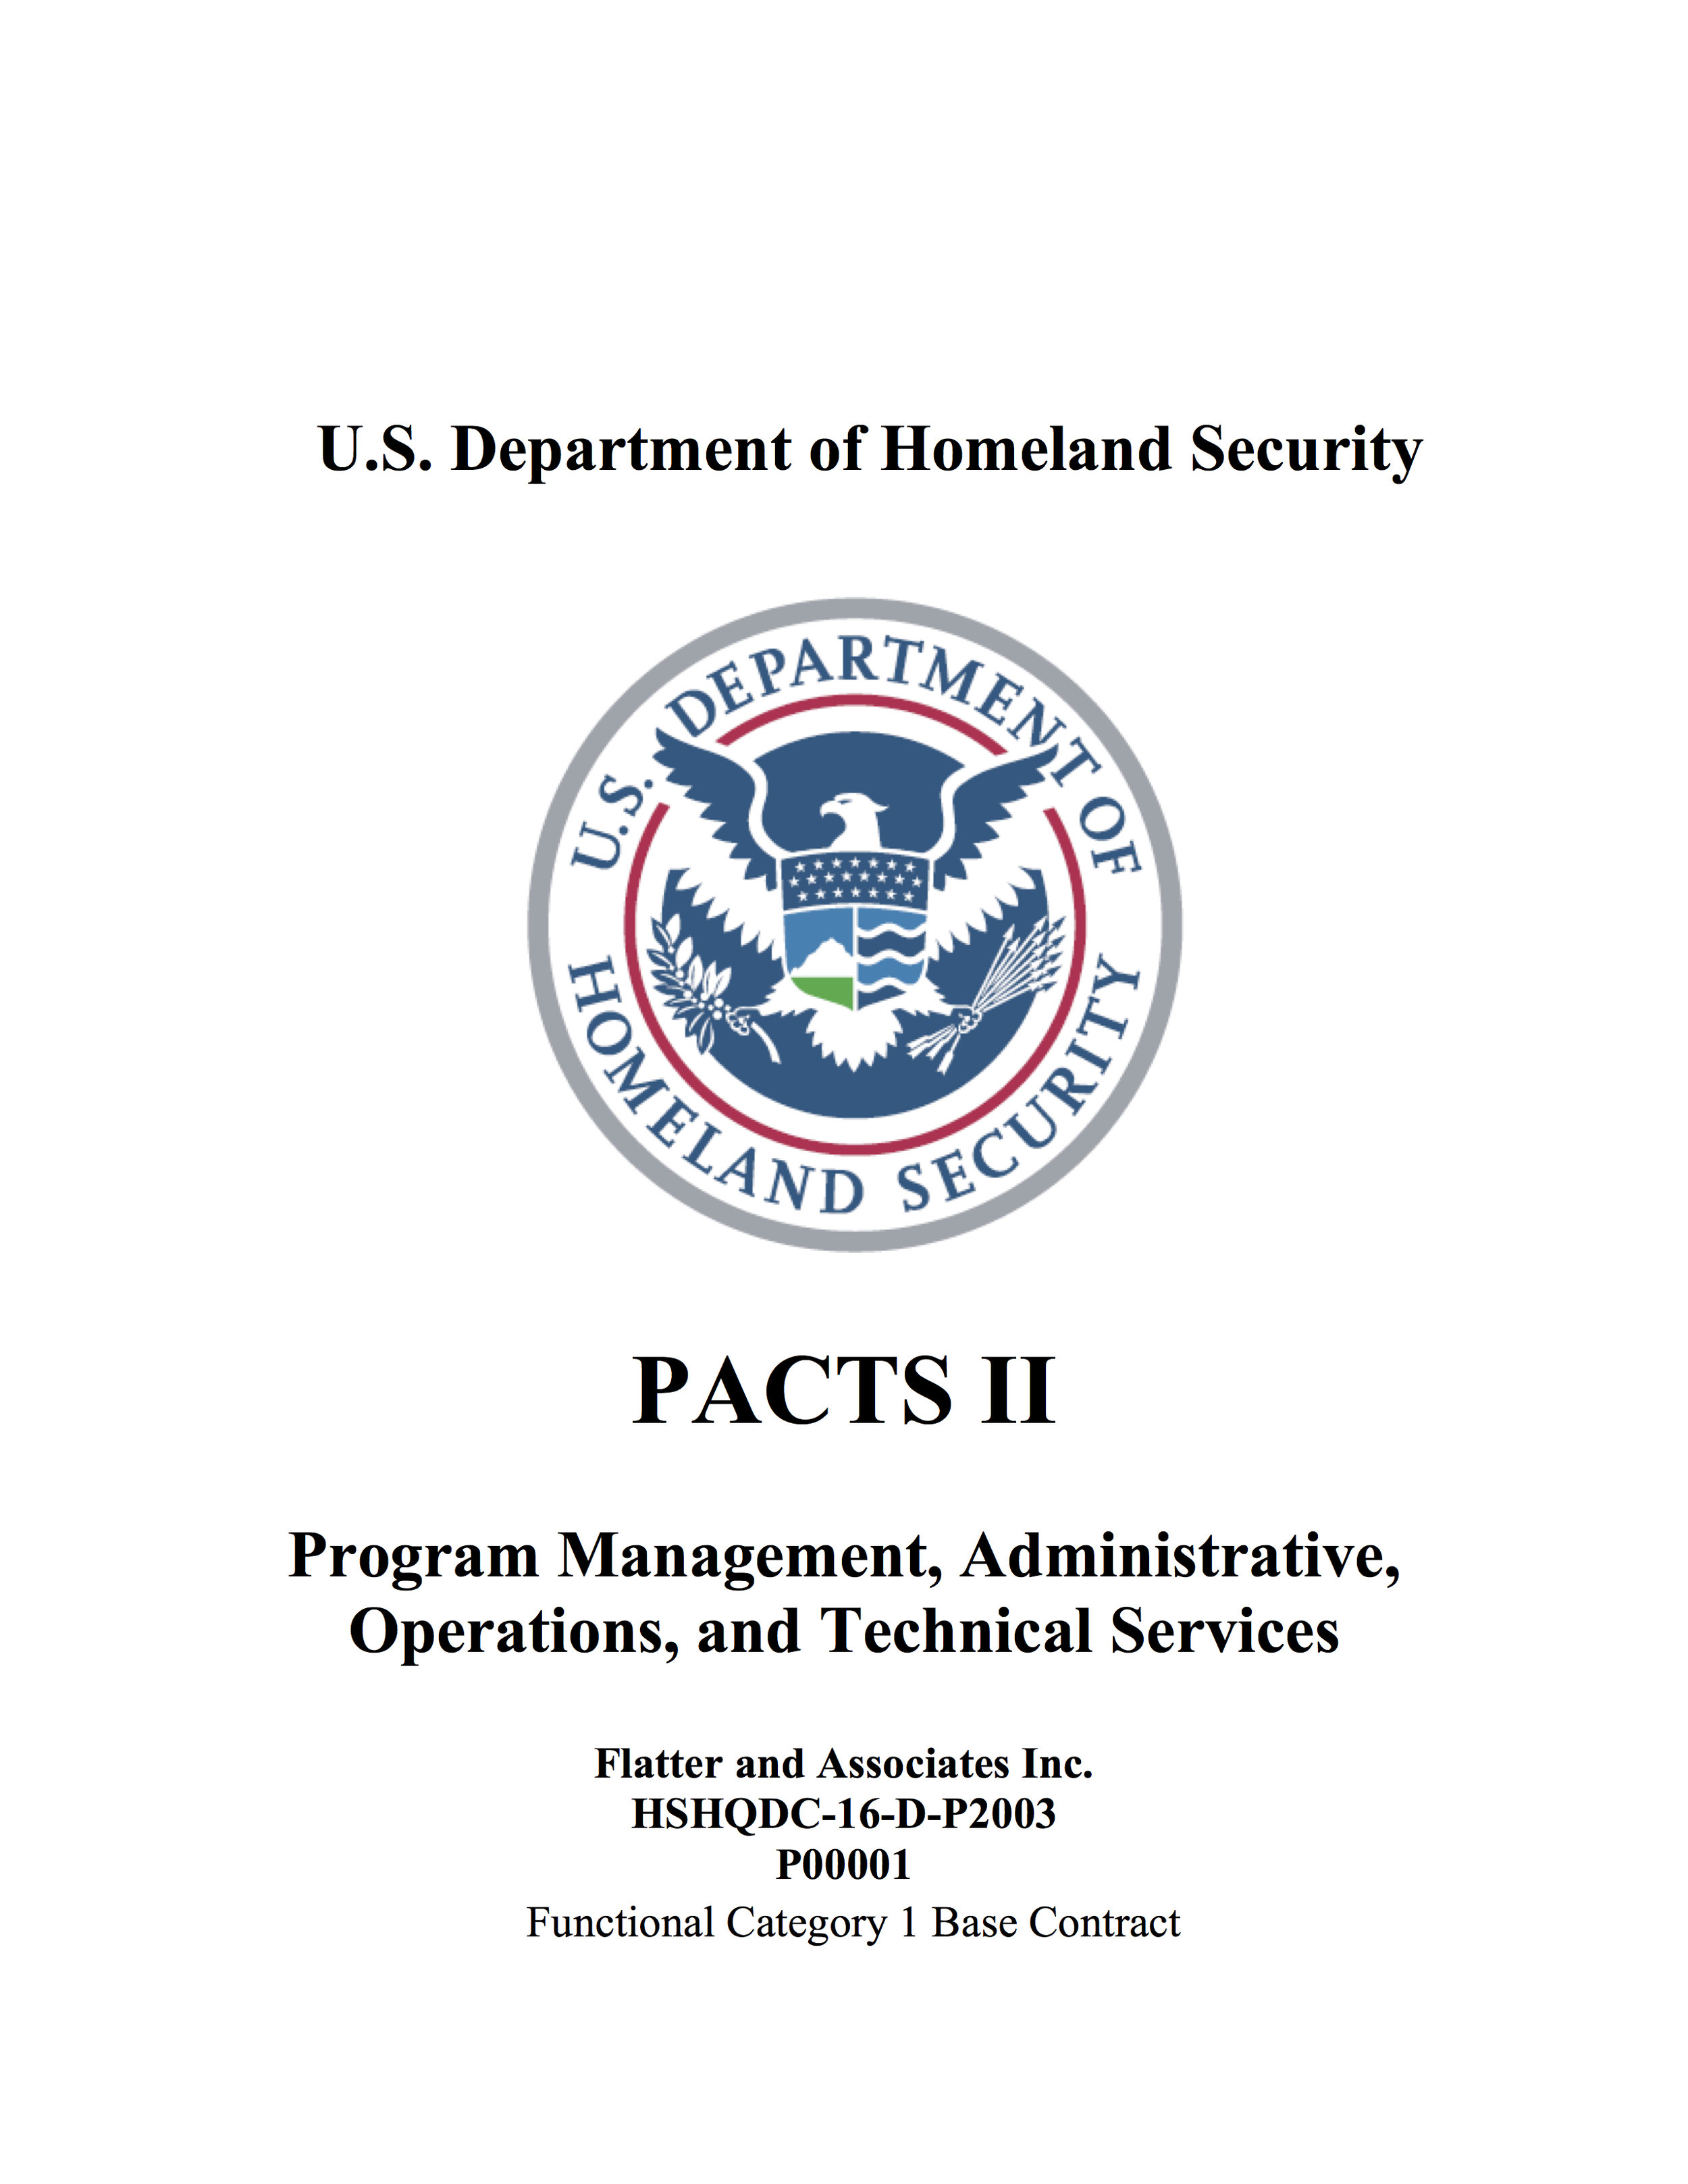 PACTS II Contract (PDF)